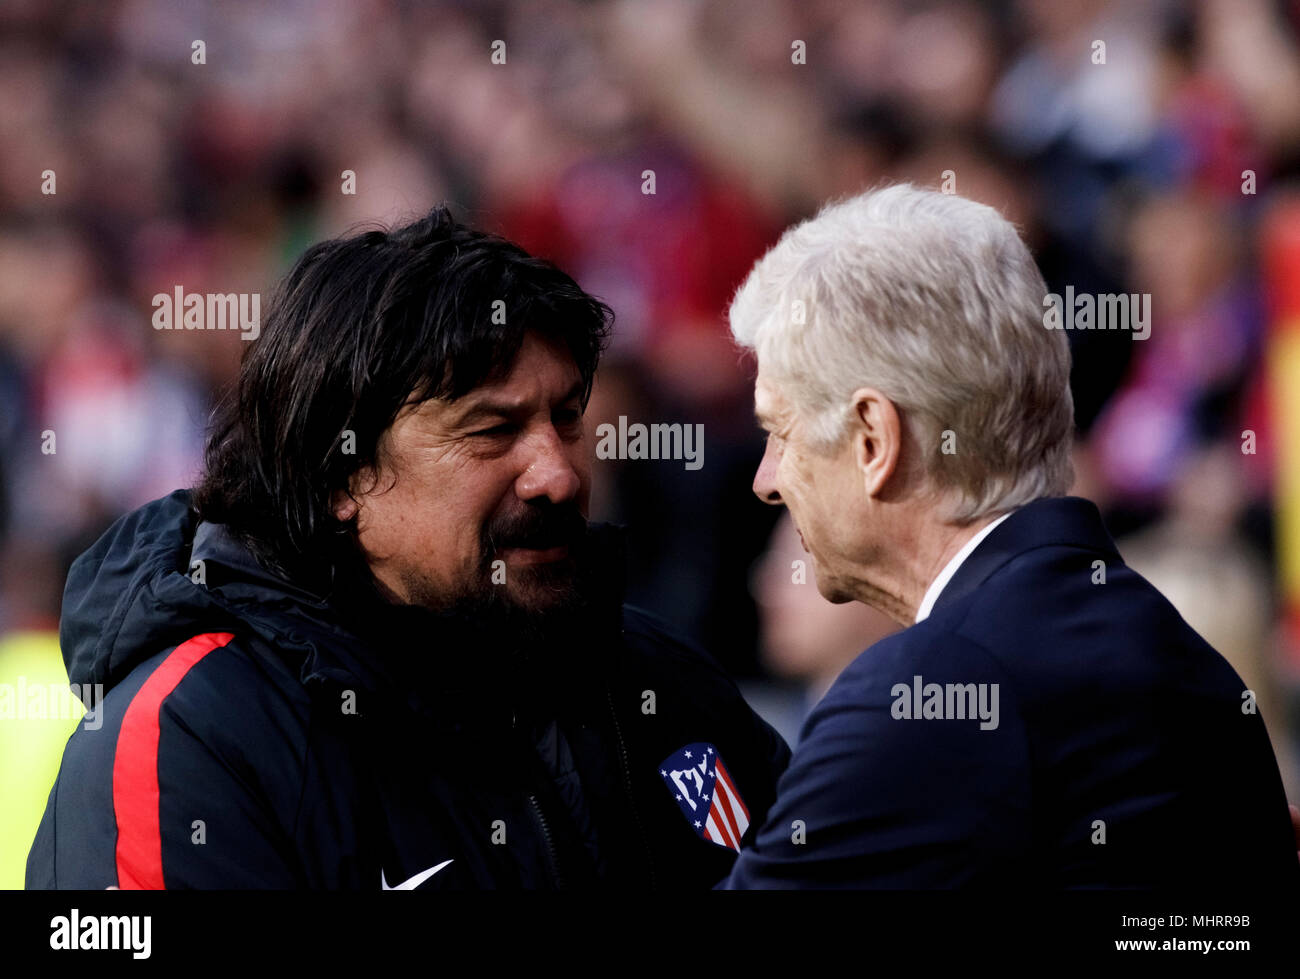 Madrid, Spain. 3rd May, 2018. Atletico de Madrid coach German Burgos and coach of Arsenal Arsene Wenger during the UEFA Europe League 2017/18 Semi final second leg match between Atletico de Madrid and Arsenal at Wanda Metropolitano Stadium in Madrid on May 3, 2018. (Photo by Guille Martinez/Cordon Press) Credit: CORDON PRESS/Alamy Live News - Stock Image